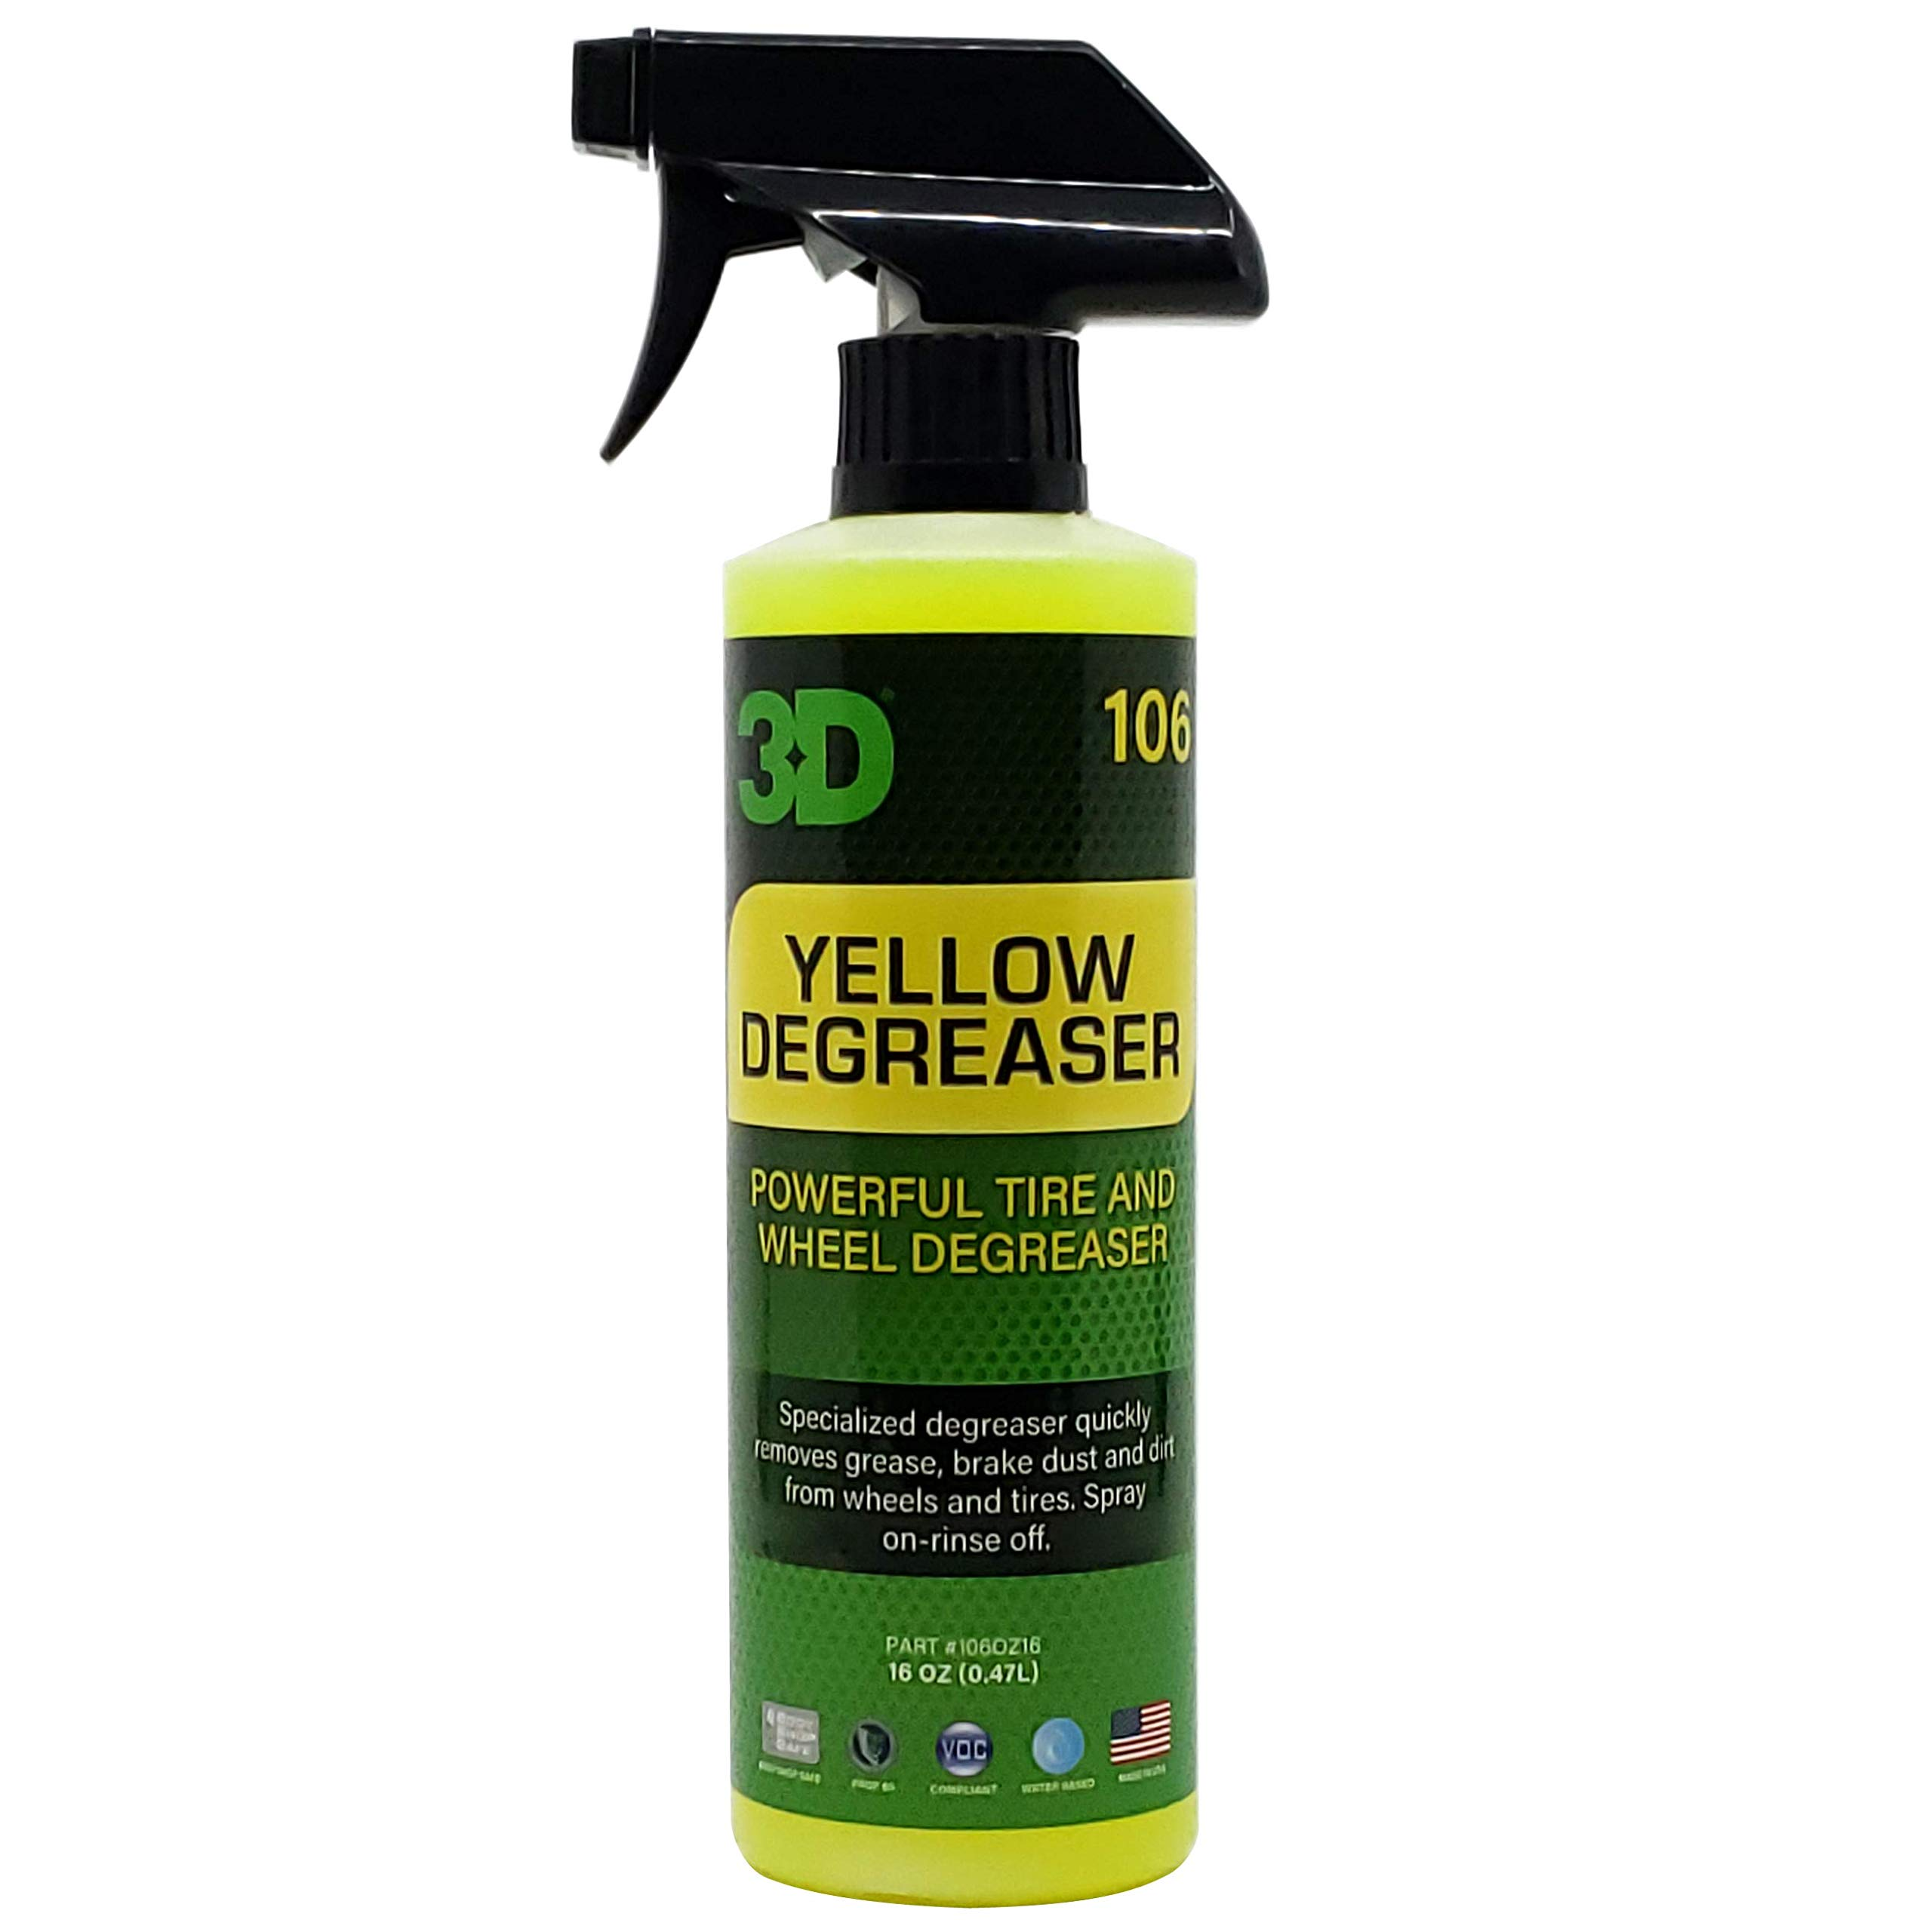 3D Yellow Degreaser Wheel & Tire Cleaner   Highly Concentrated Degreaser & Cleaner   Safe for All Tires   Removes Grease & Brake Dust   Made in USA   All Natural   No Harmful Chemicals (16 oz.)